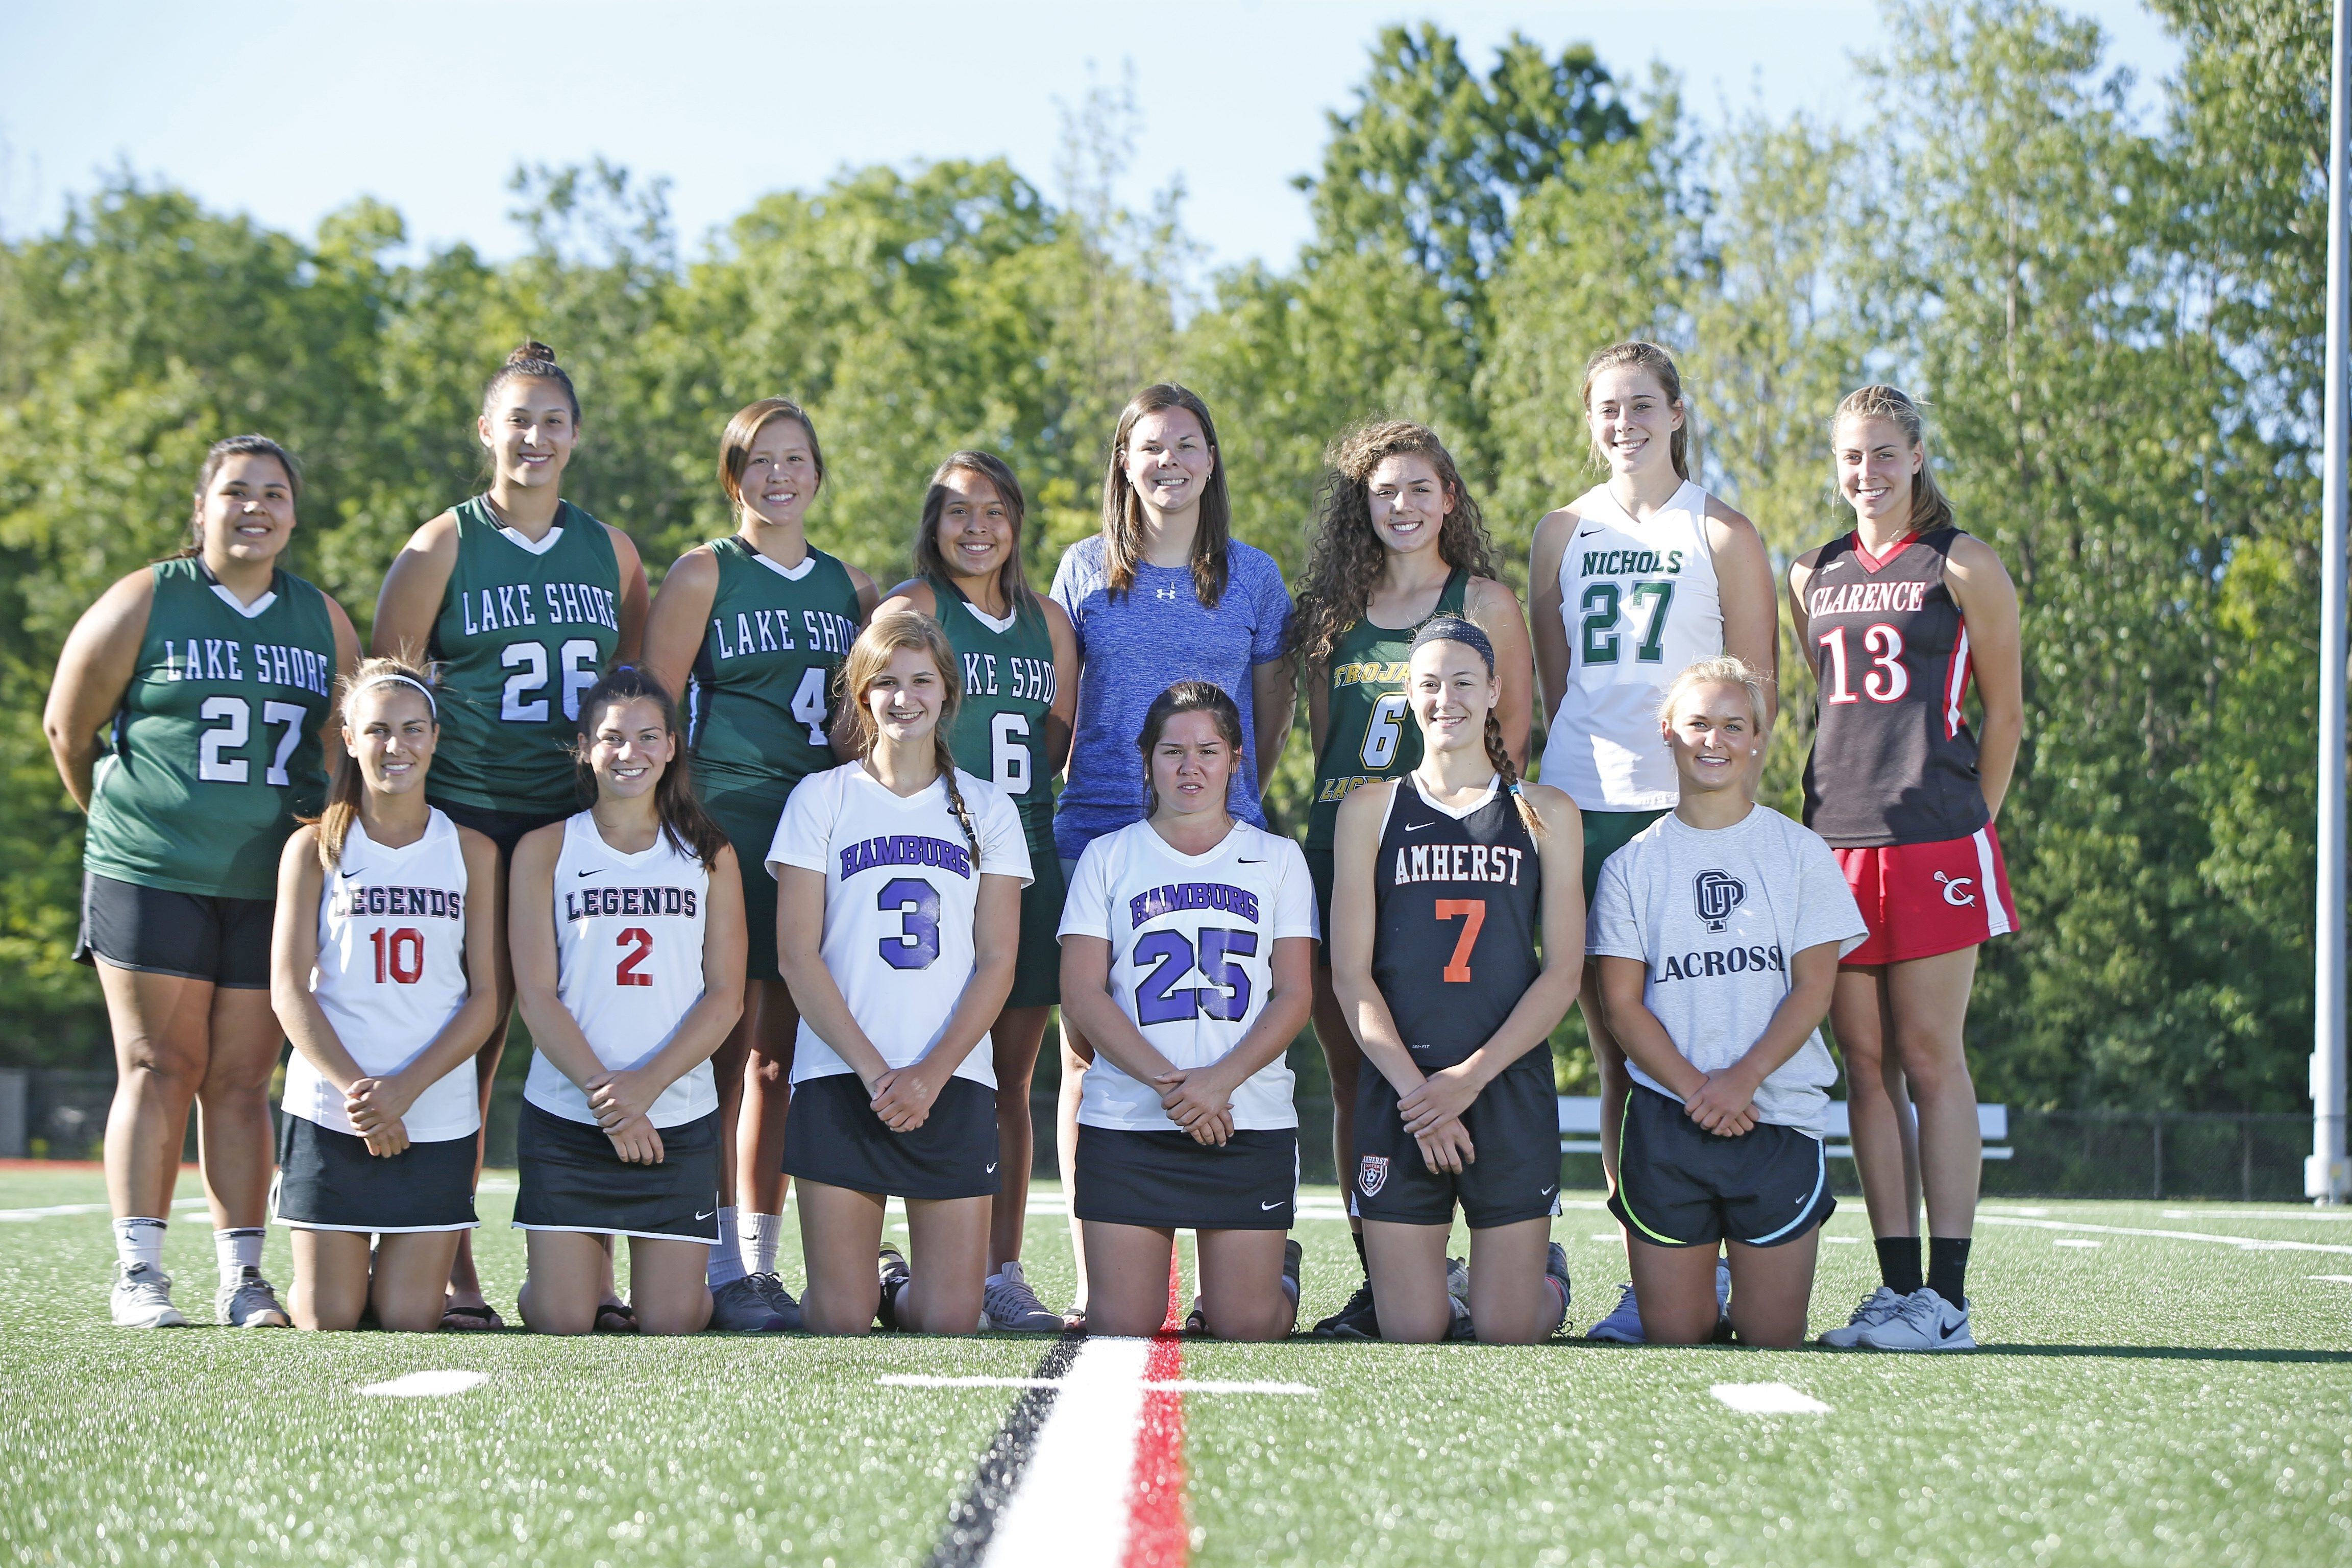 The All-WNY Girls Lacrosse Team, front row, from left: Riley Lucarelli, Lancaster; Anna Orlando, Lancaster; Claire Herrmann, Hamburg; Rebecca Izzo, Hamburg; McKenna Rushford, Amherst; Grace Ruh, Orchard Park; back row: Jenna Haring, Lake Shore; Shayla Scanlan, Lake Shore; Jalyn Jimerson, Lake Shore; Ivy Santana, Lake Shore; Jennifer Shalke, Grand Island, Coach of the Year; Laura Skrzypczyk, West Seneca East; Lindsay Hogan, Nichols; Sydney Cerza, Clarence. Not pictured: Lexi Rockey, Frontier.